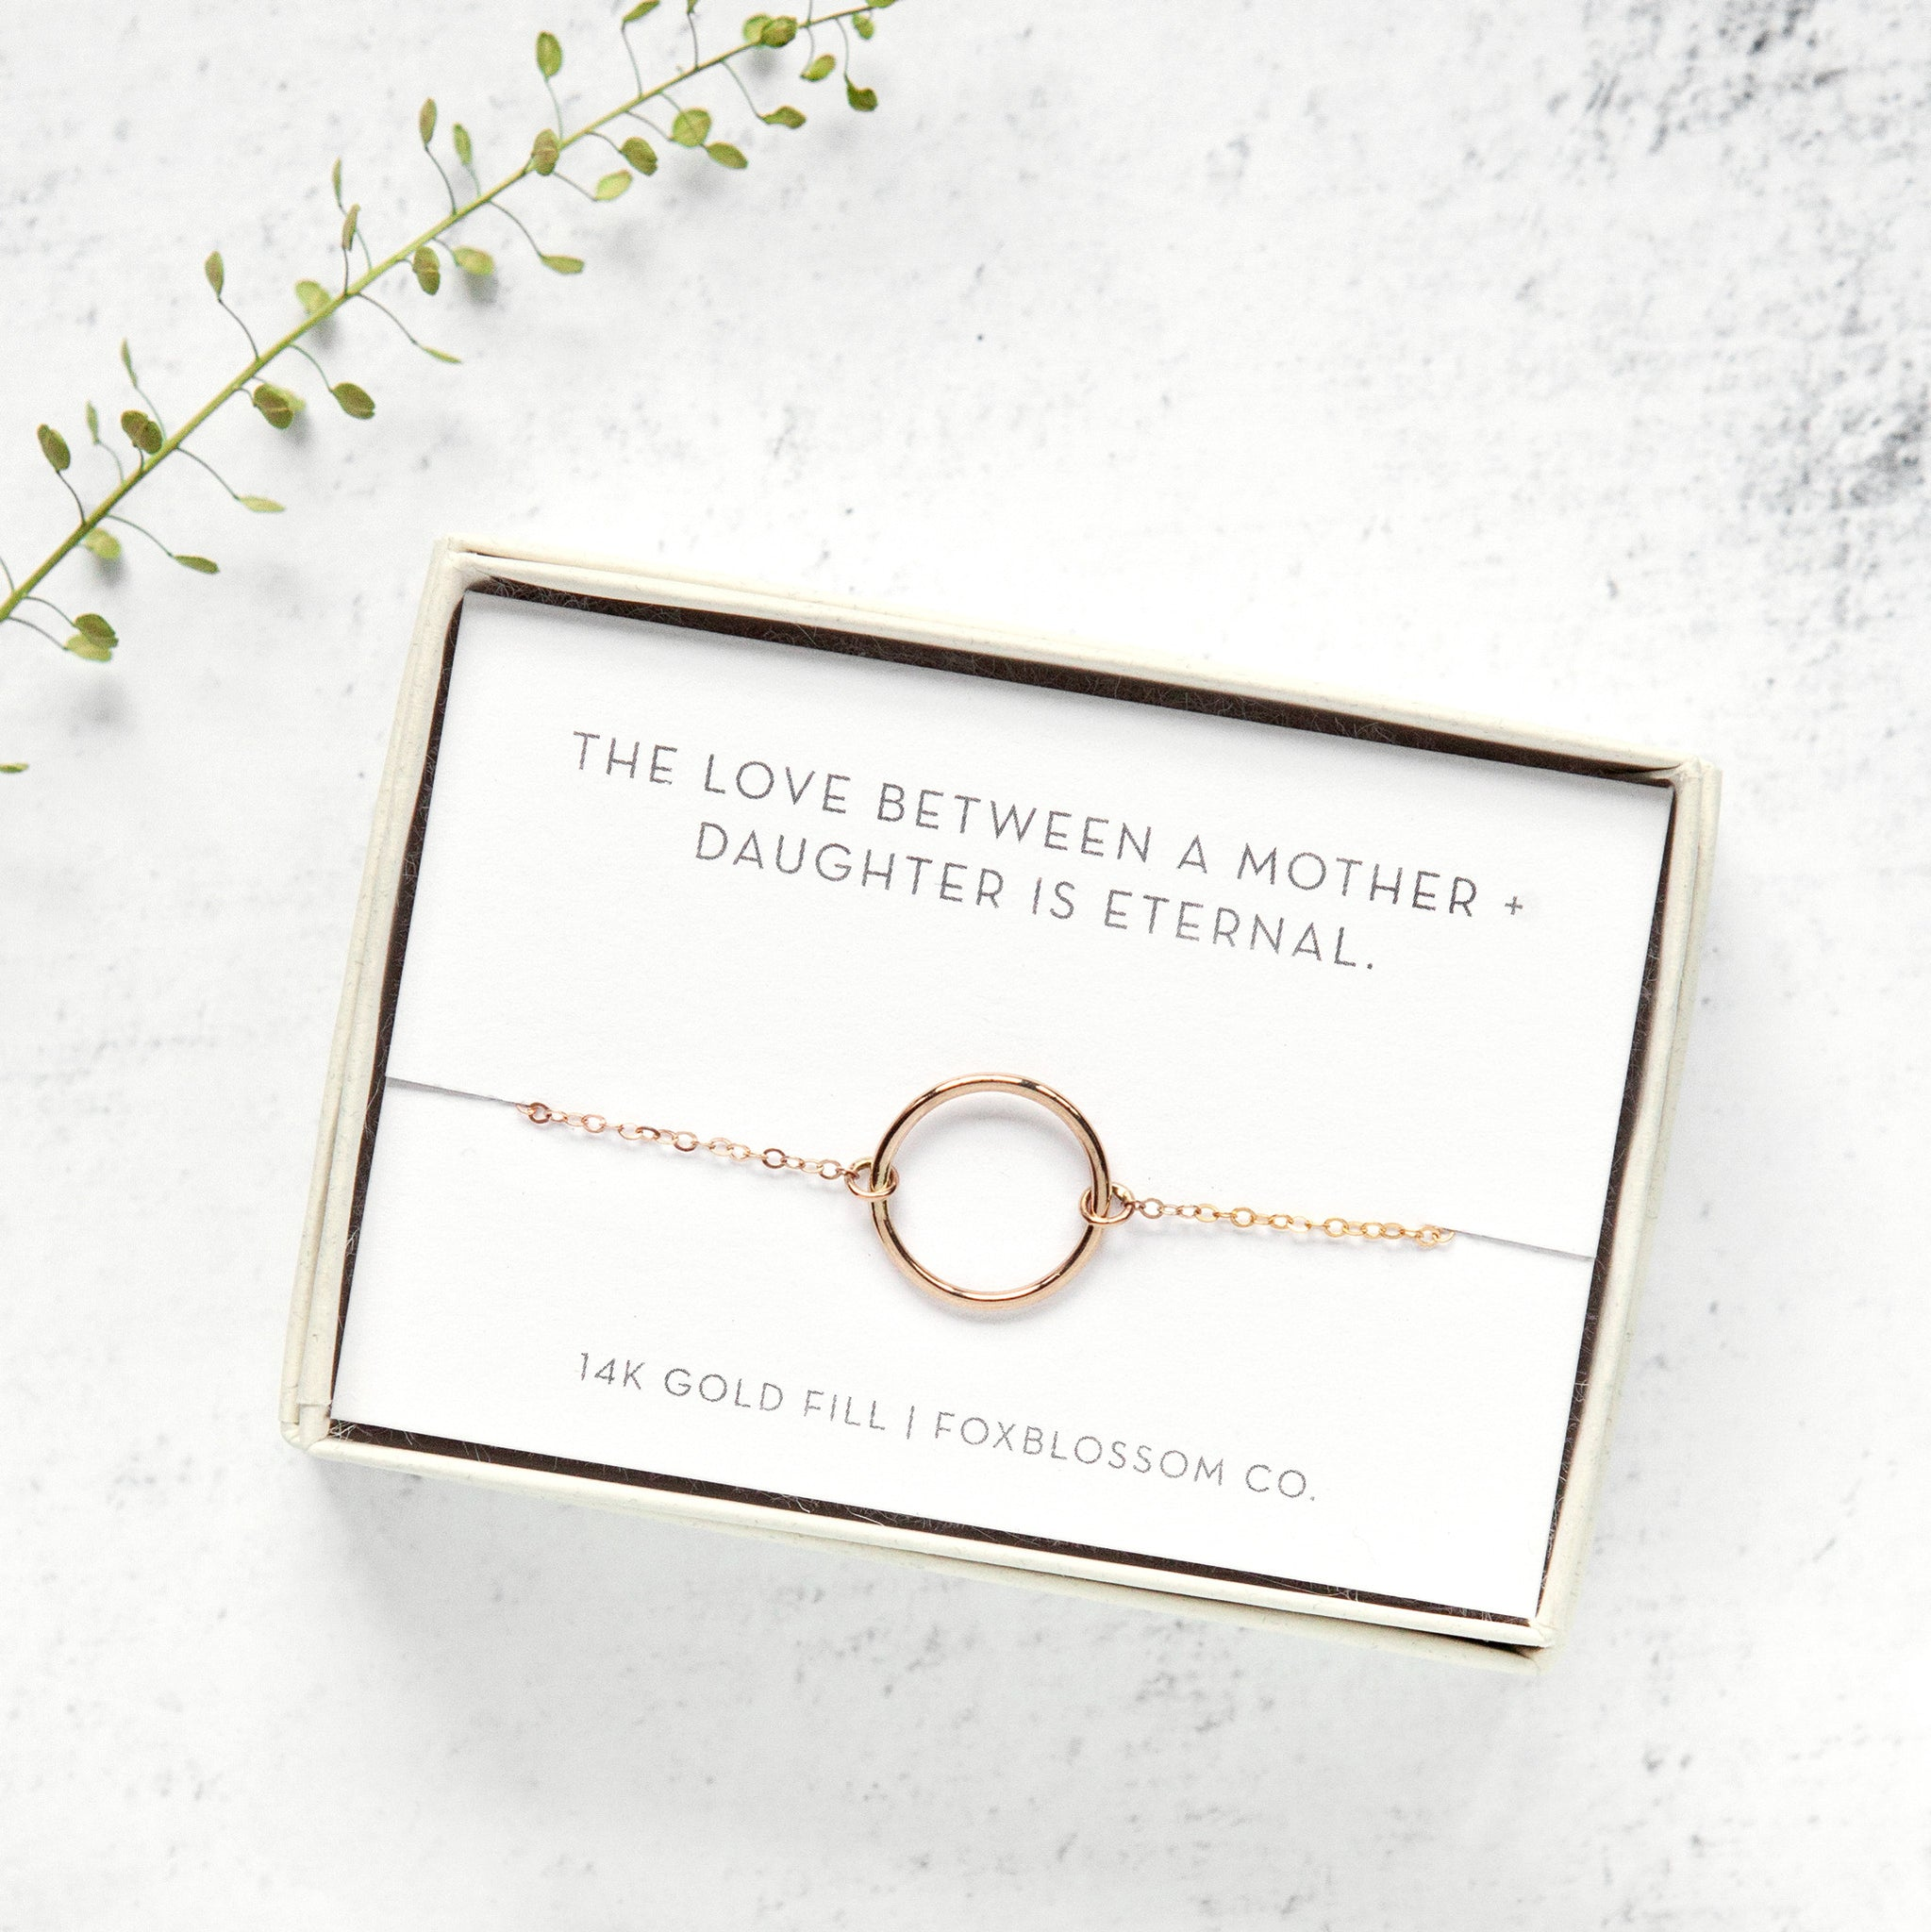 Foxblossom Co. Mother Daughter Eternity Bracelet